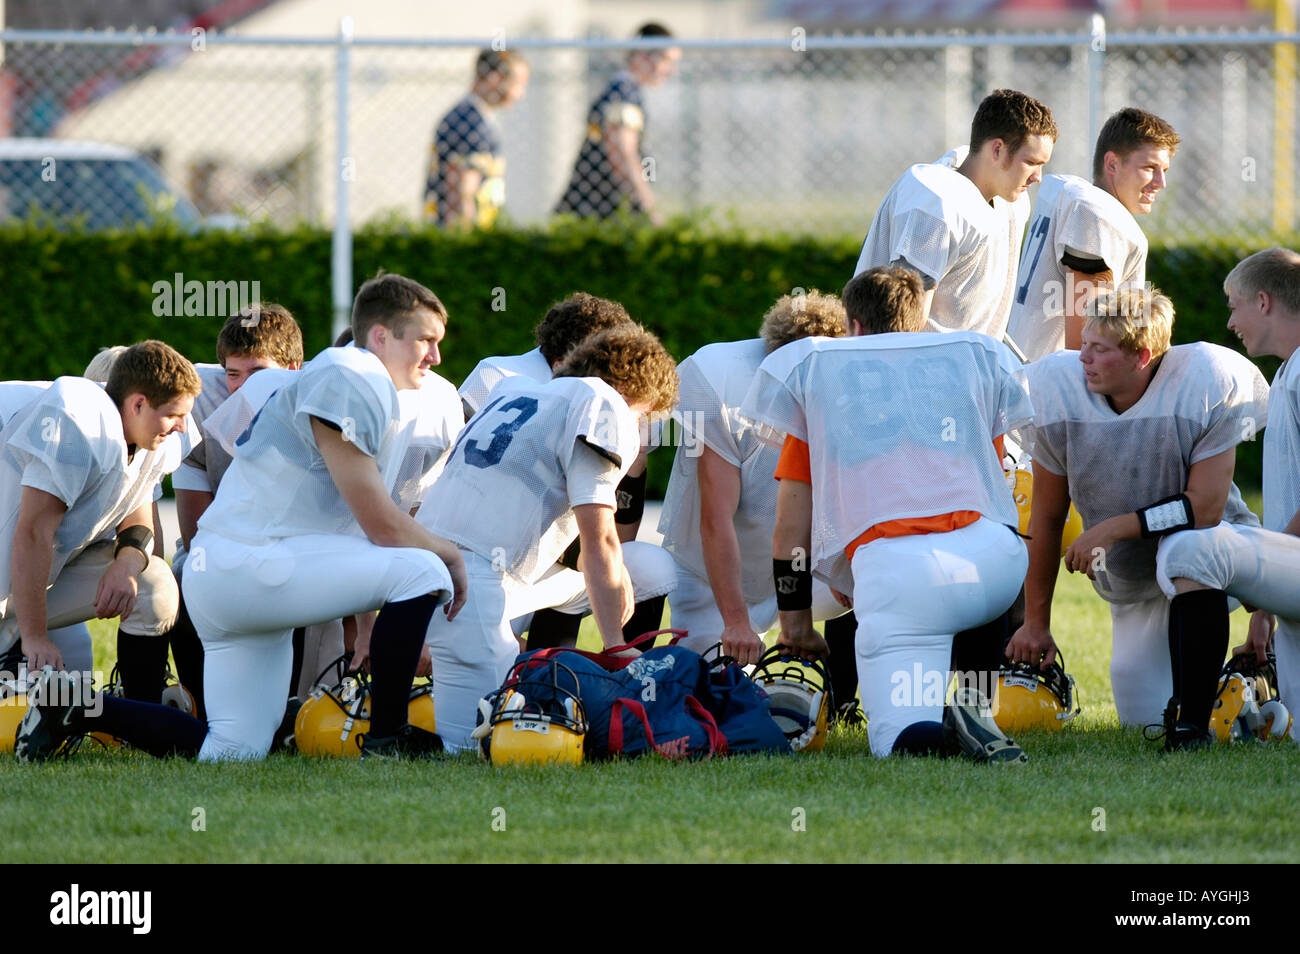 Football players plan with coaches before playing in a game - Stock Image